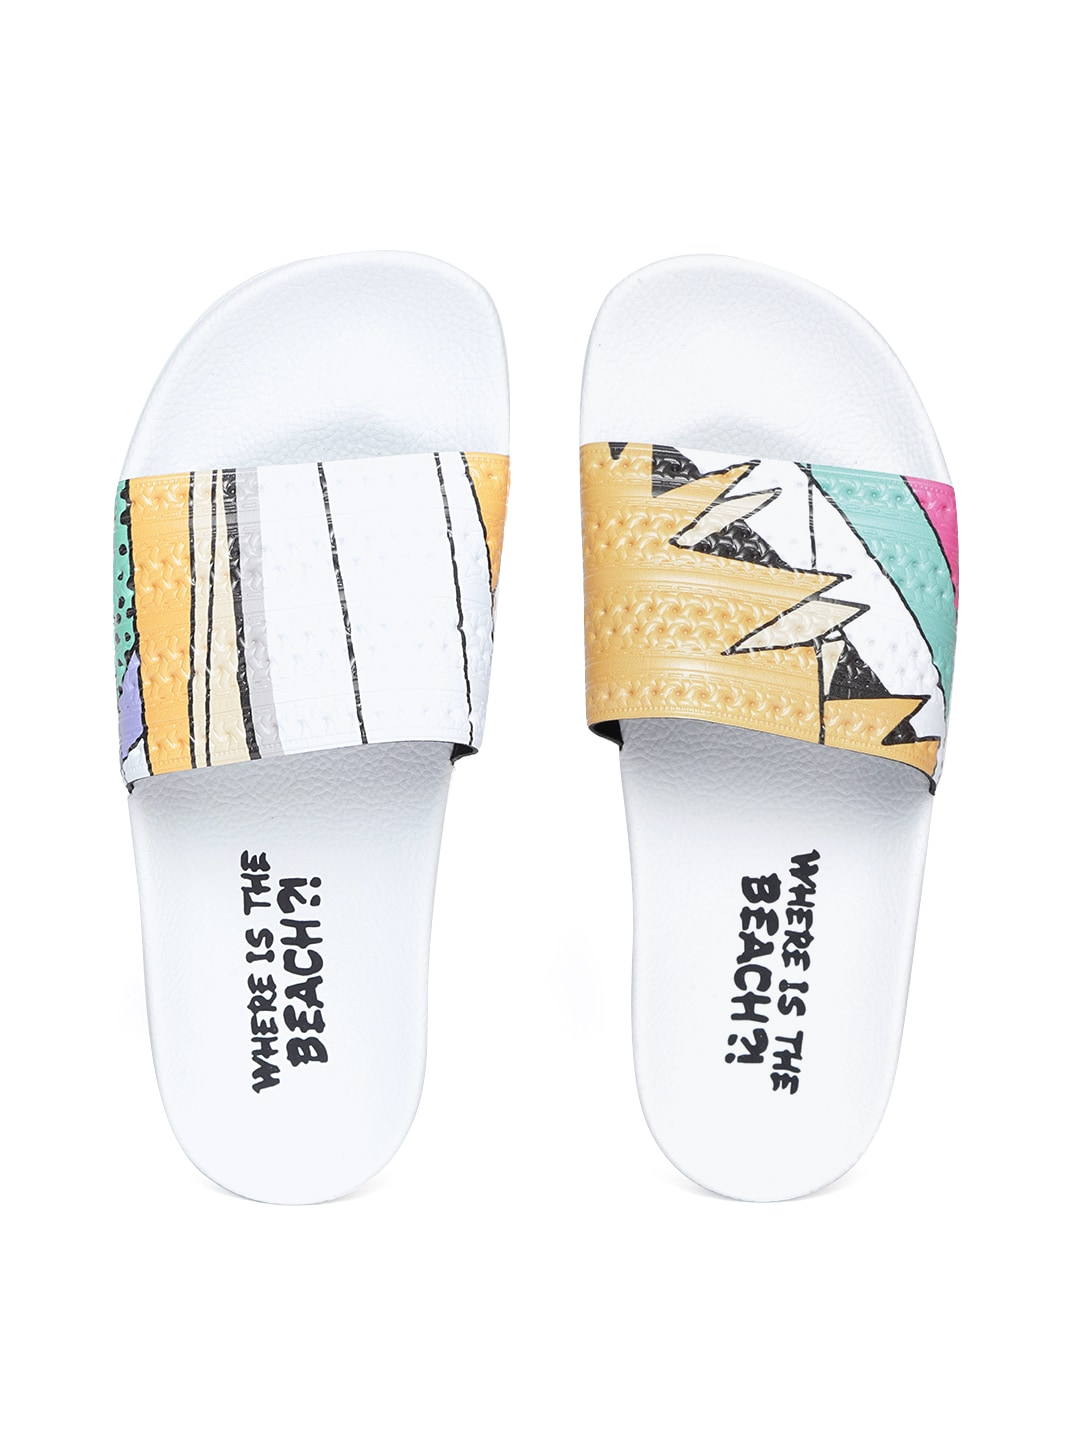 6dfaf189a Adidas Originals Tracksuits Tights Flip Flops - Buy Adidas Originals  Tracksuits Tights Flip Flops online in India